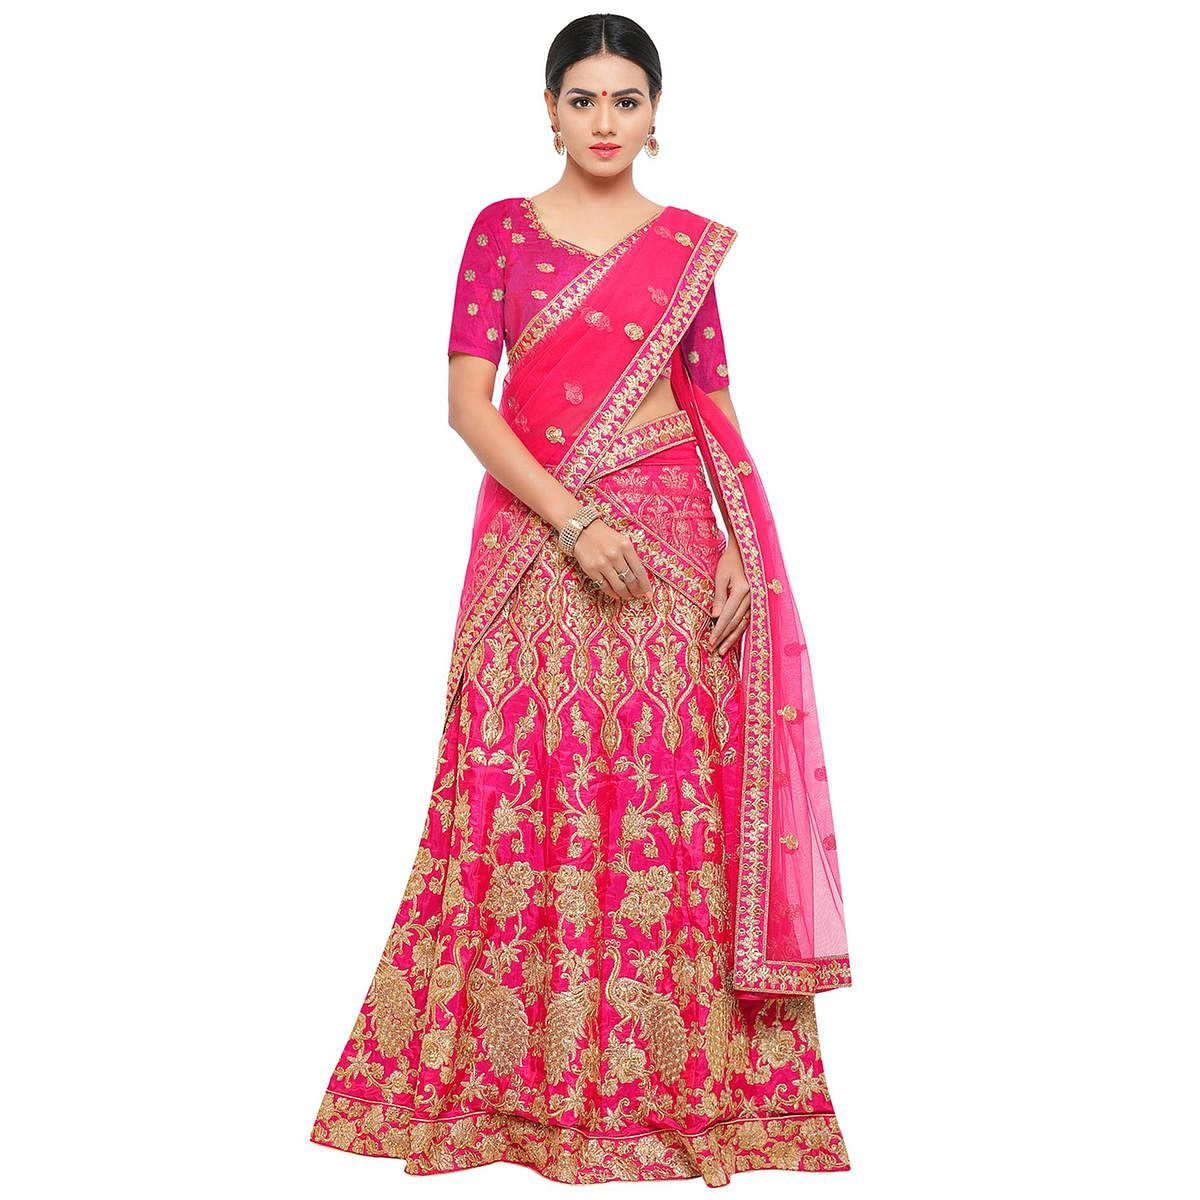 e652c88e53 Buy Hot Pink Colored Embroidered Bhagalpuri Silk Lehenga Choli Online  India, Best Prices, Reviews - Peachmode